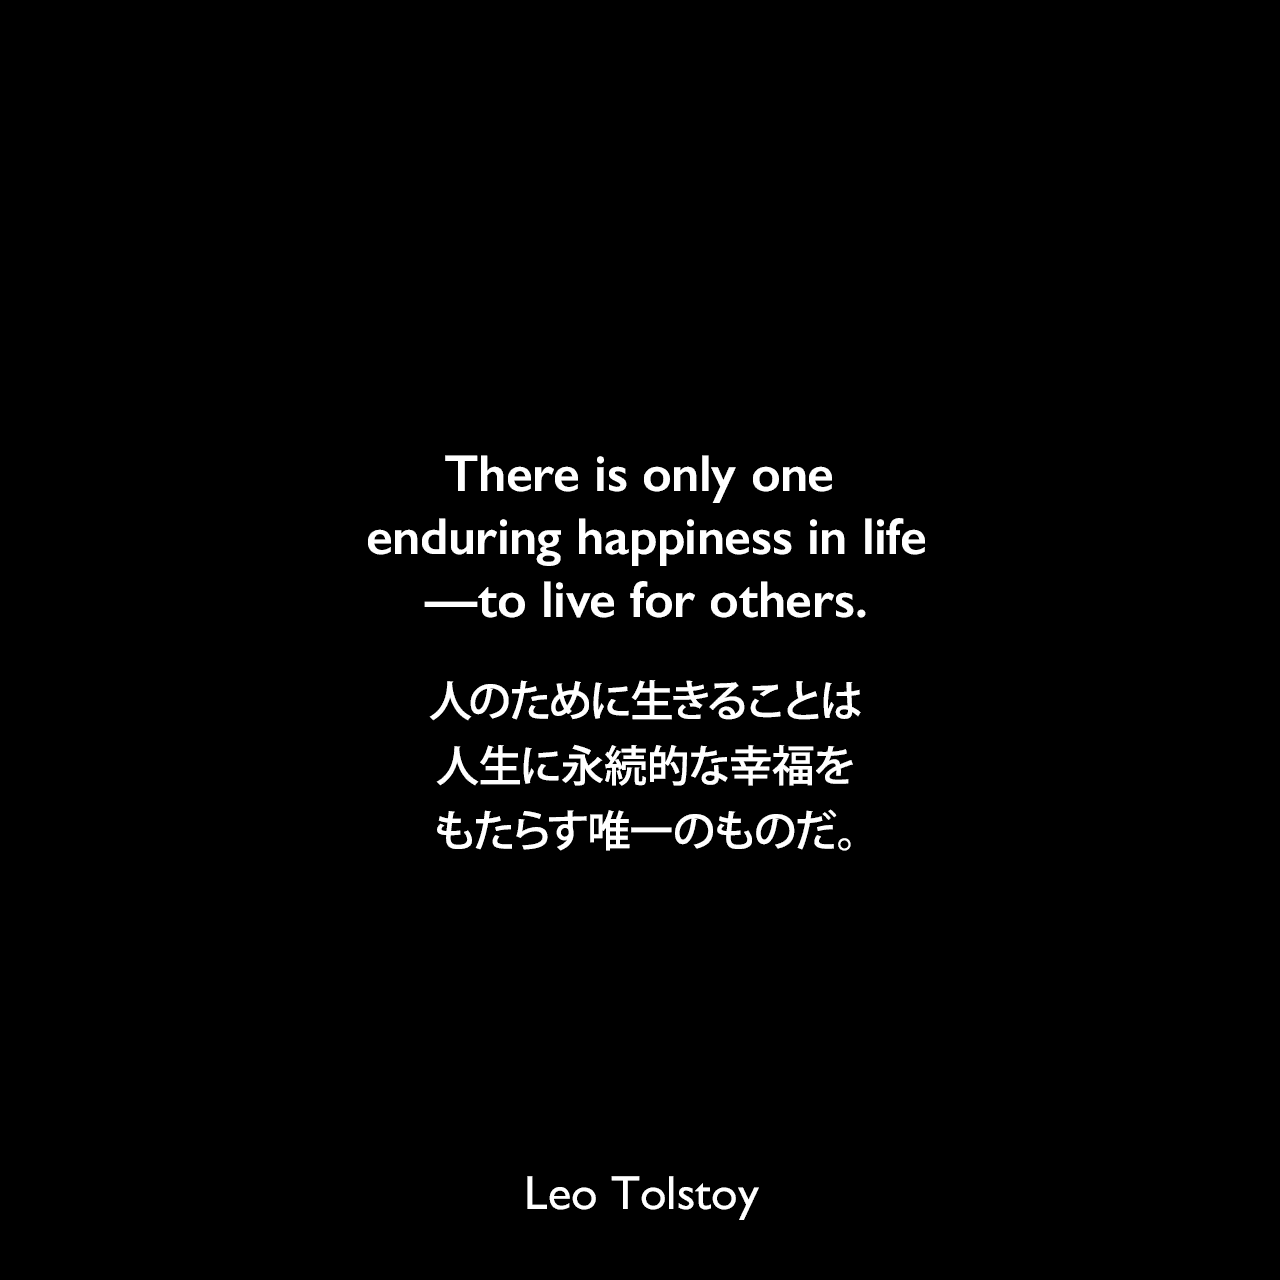 There is only one enduring happiness in life—to live for others.人のために生きることは、人生に永続的な幸福をもたらす唯一のものだ。- トルストイによる本「幸せな家庭」よりLeo Tolstoy